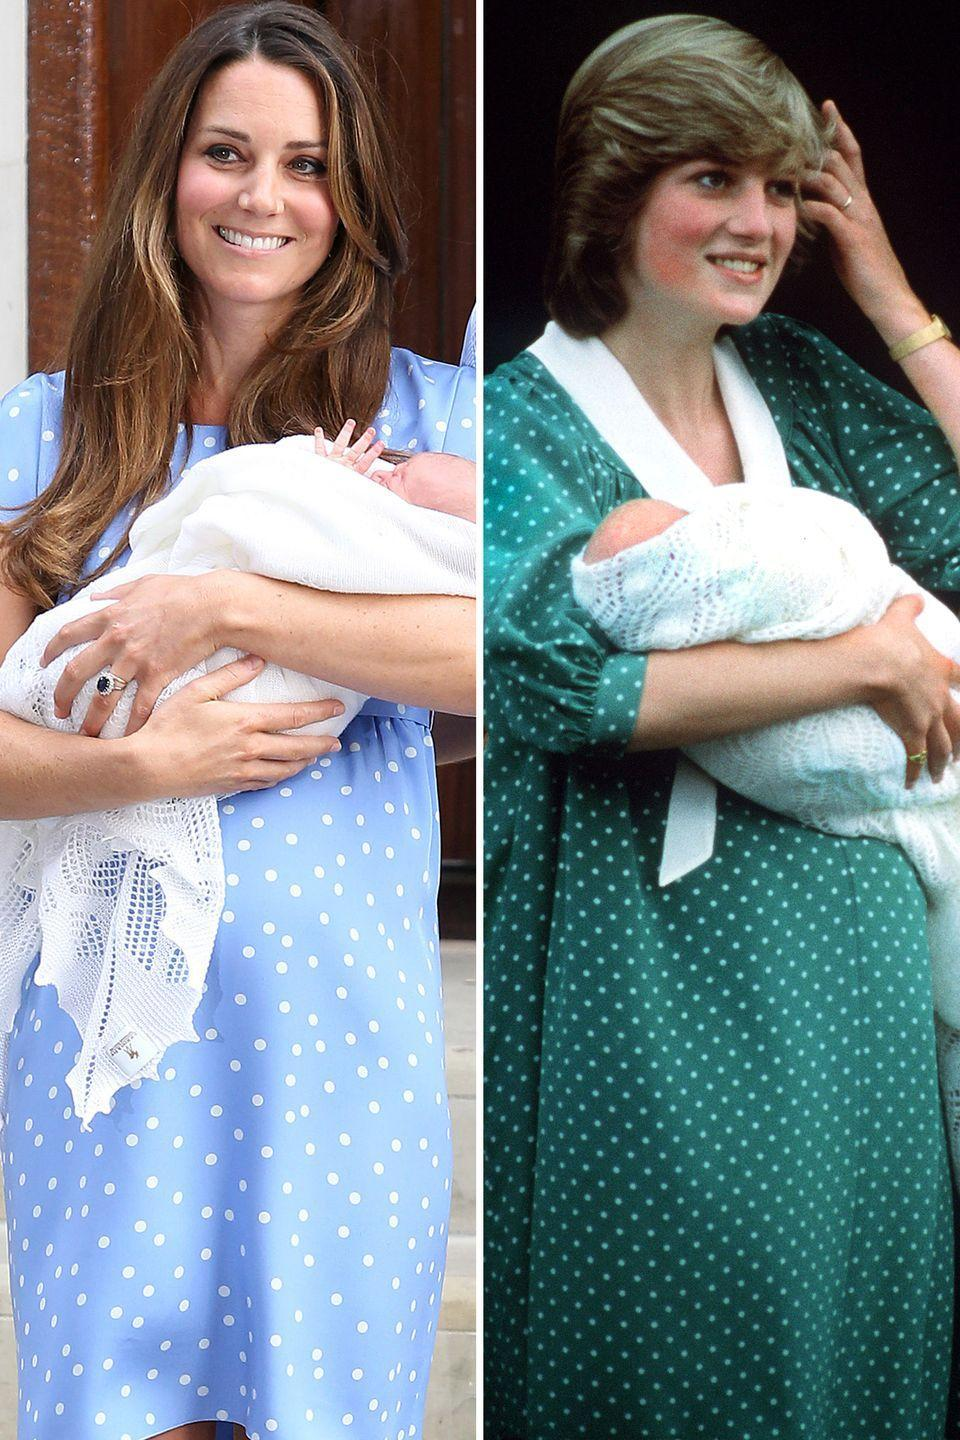 """<p>As <a href=""""https://www.townandcountrymag.com/society/tradition/a19674665/kate-middleton-post-birth-appearance-differences-comparison/"""" rel=""""nofollow noopener"""" target=""""_blank"""" data-ylk=""""slk:Town & Country"""" class=""""link rapid-noclick-resp""""><em>Town & Country</em></a> points out, the billowy dress was very similar to the one Diana wore when leaving the hospital with Prince William 30 years earlier. Aww!</p>"""